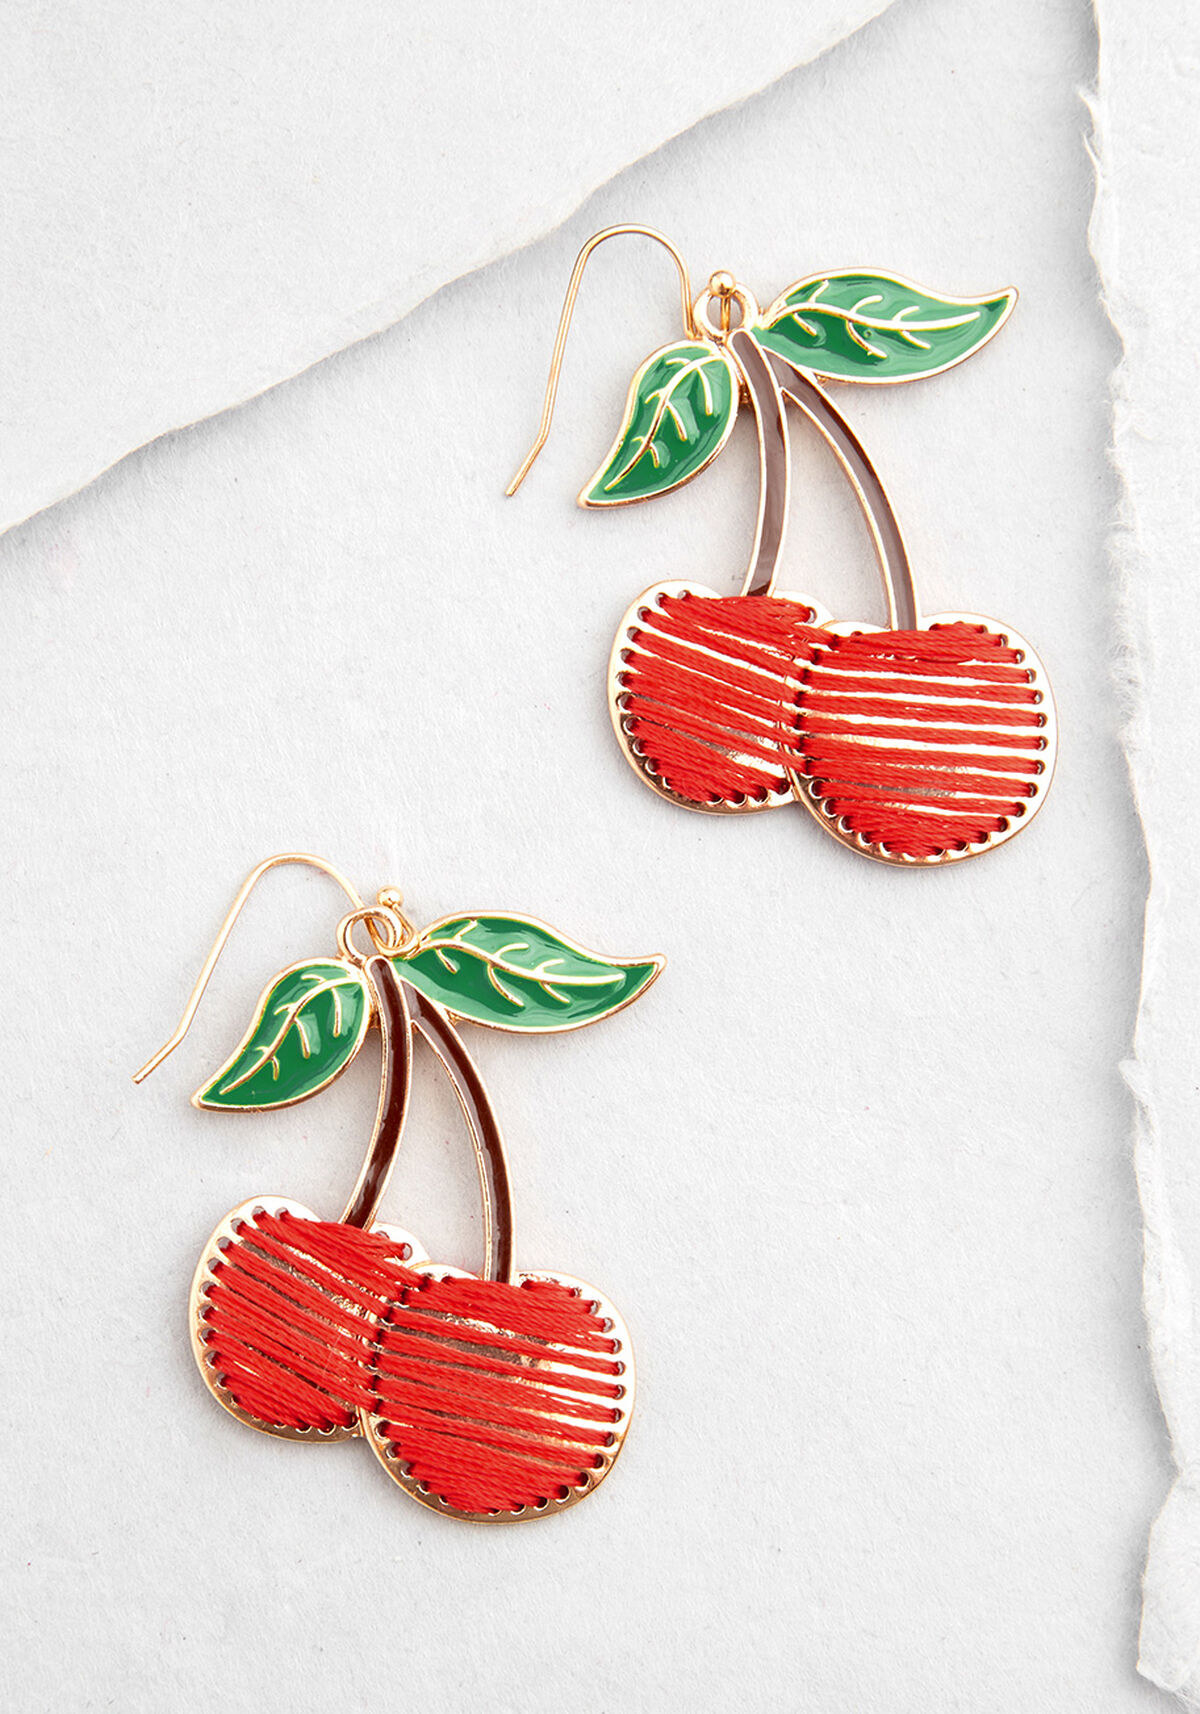 The cherry shaped gold earrings with two cherries per ear, green enameled leaves, brown enameled stems, and fruits that are gold in the back but embroidered with red thread